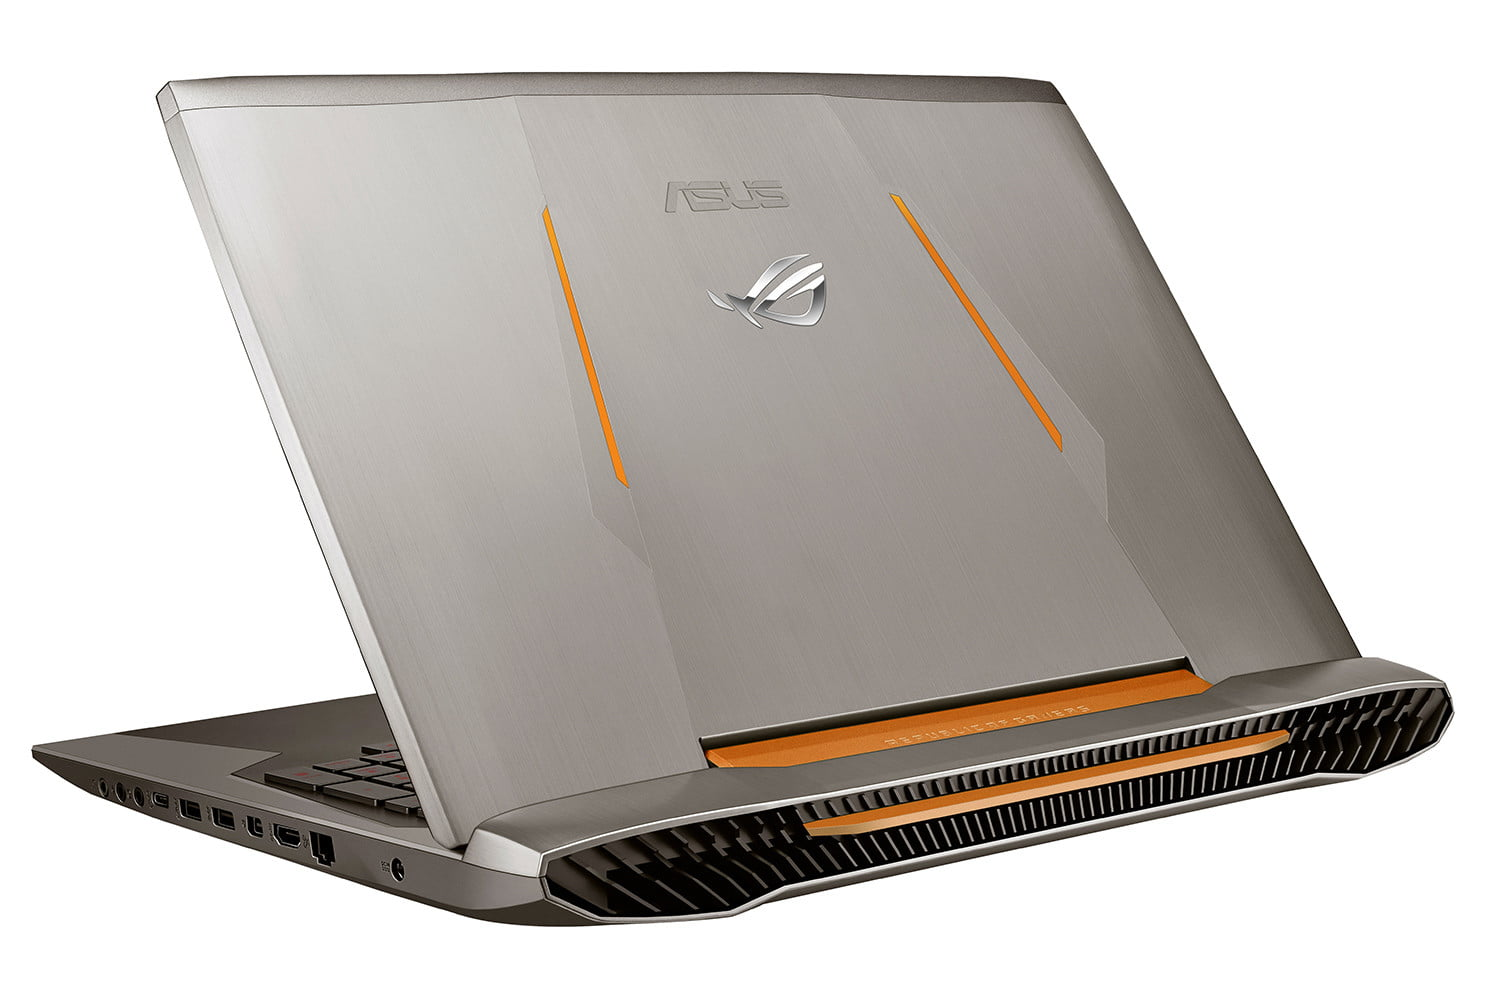 asus announces water cooled gaming laptop at ifa 2015 g752